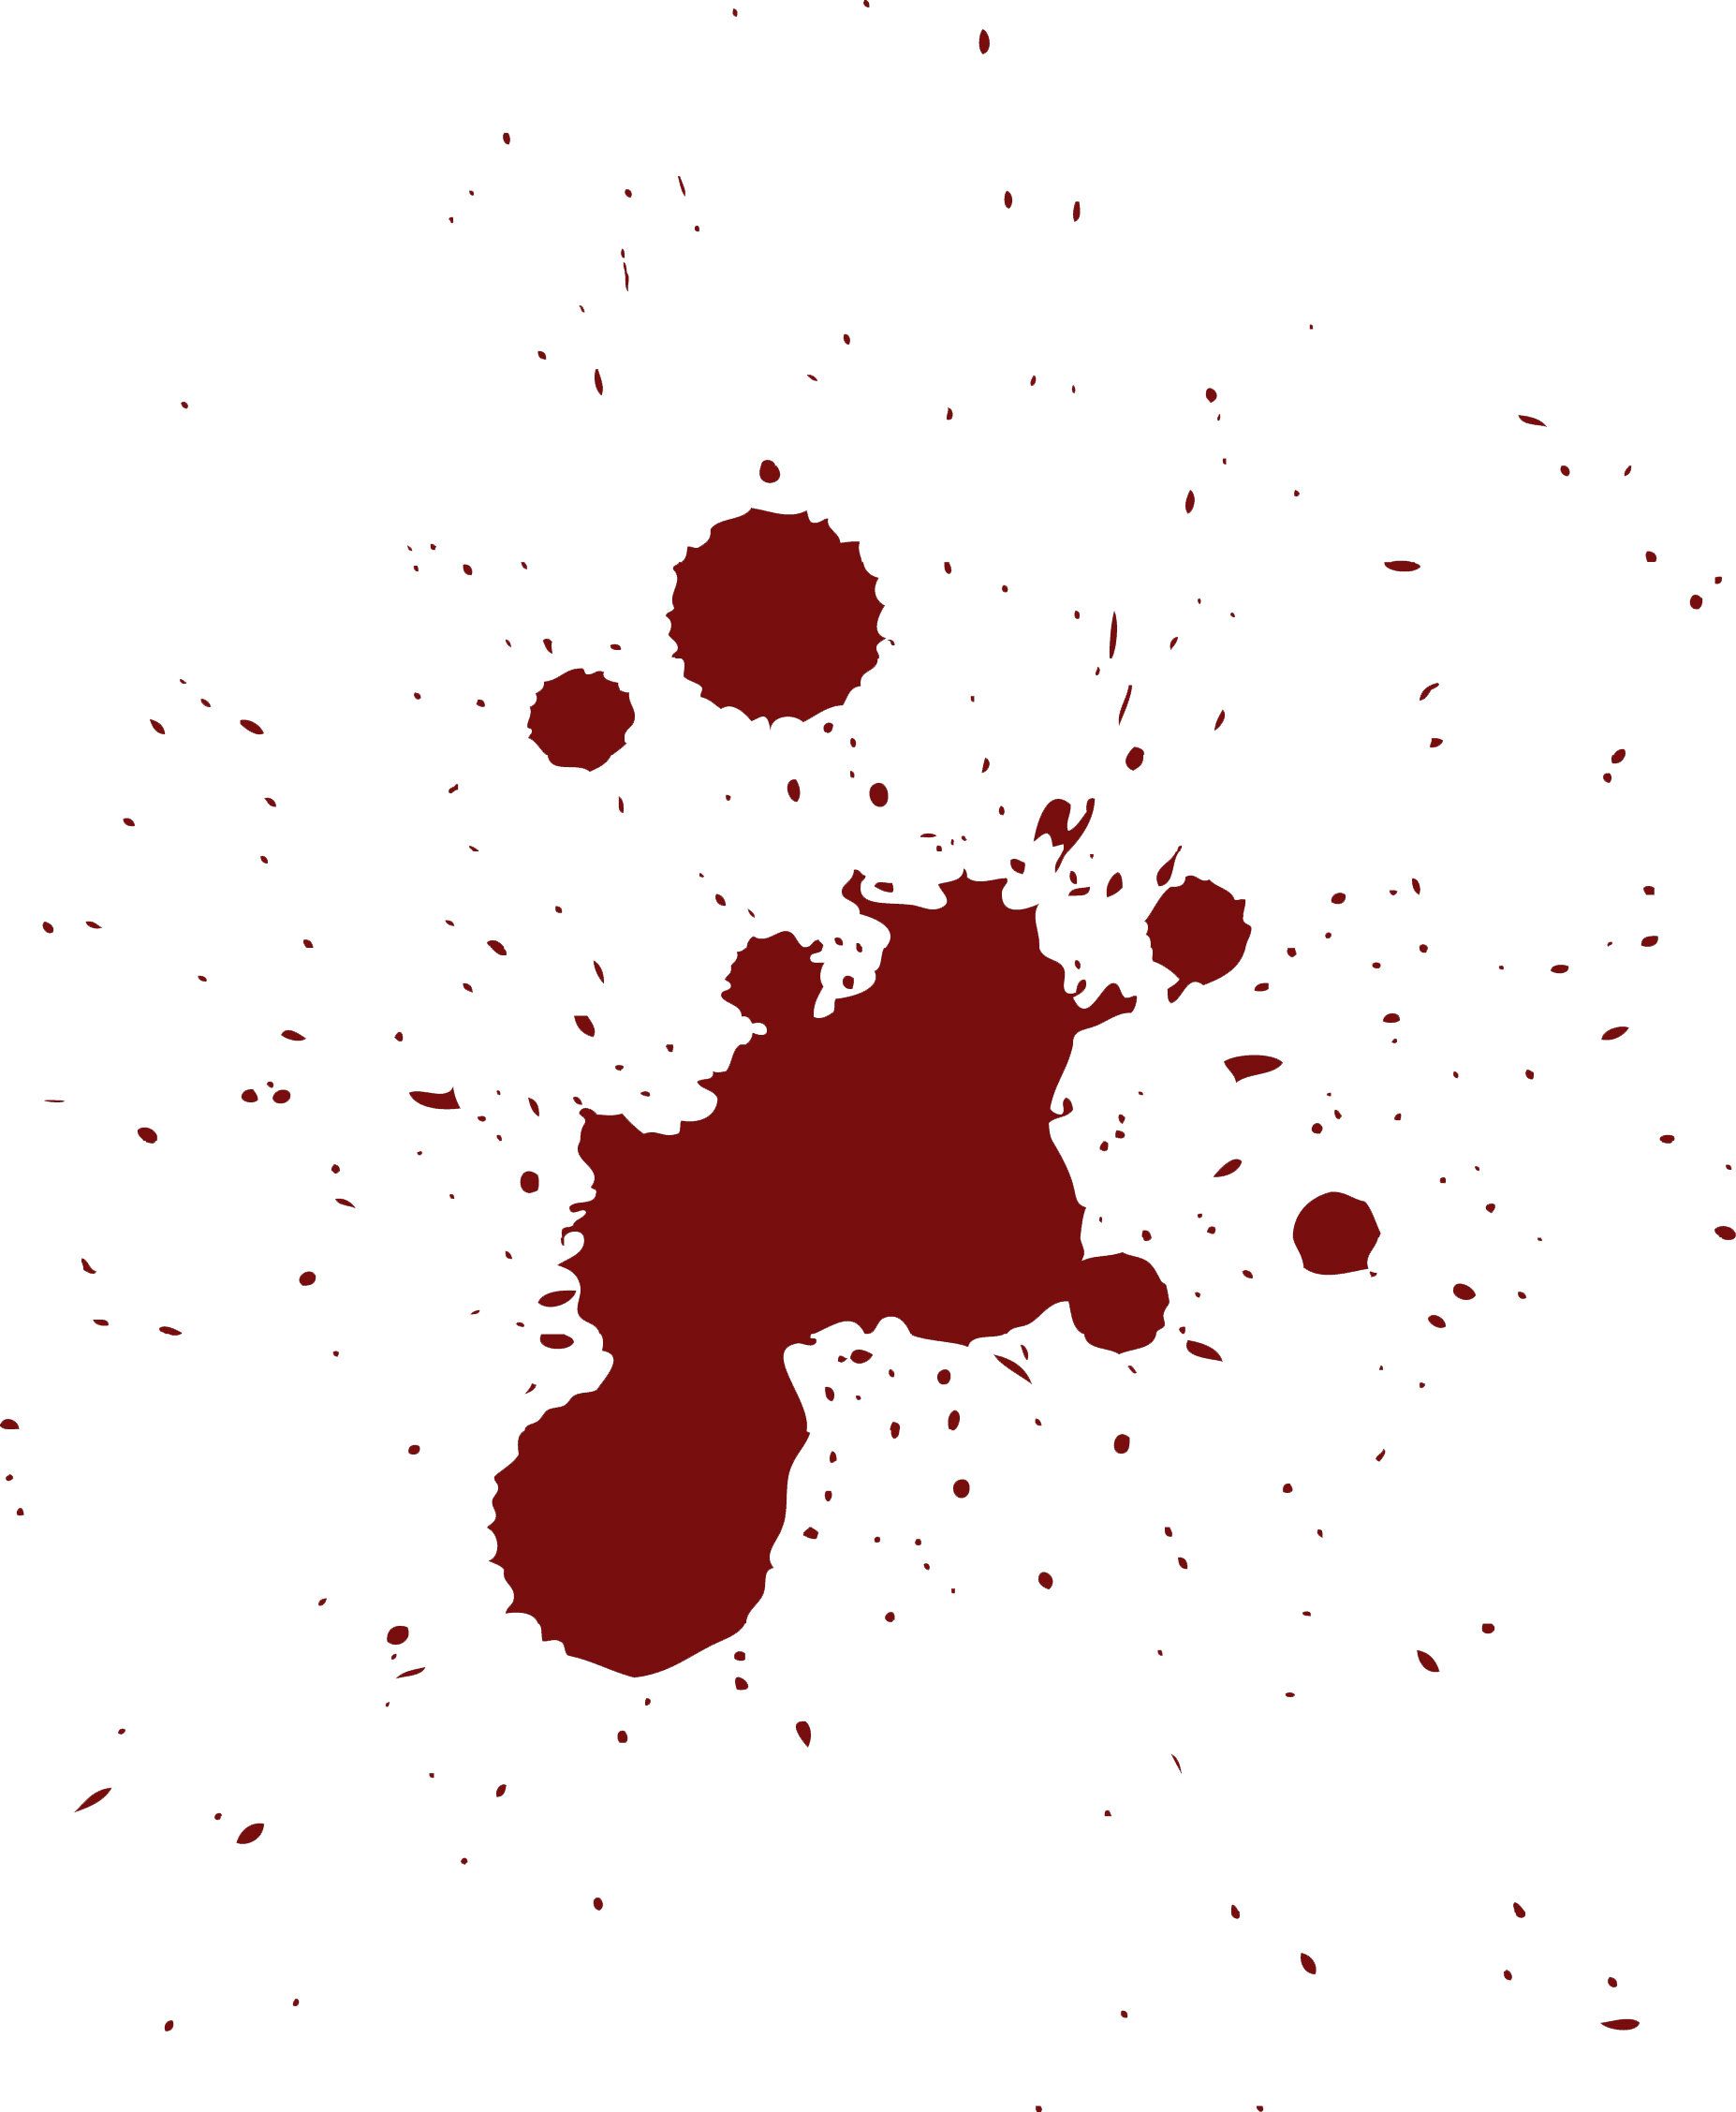 Splatter Png | Free download best Splatter Png on ...